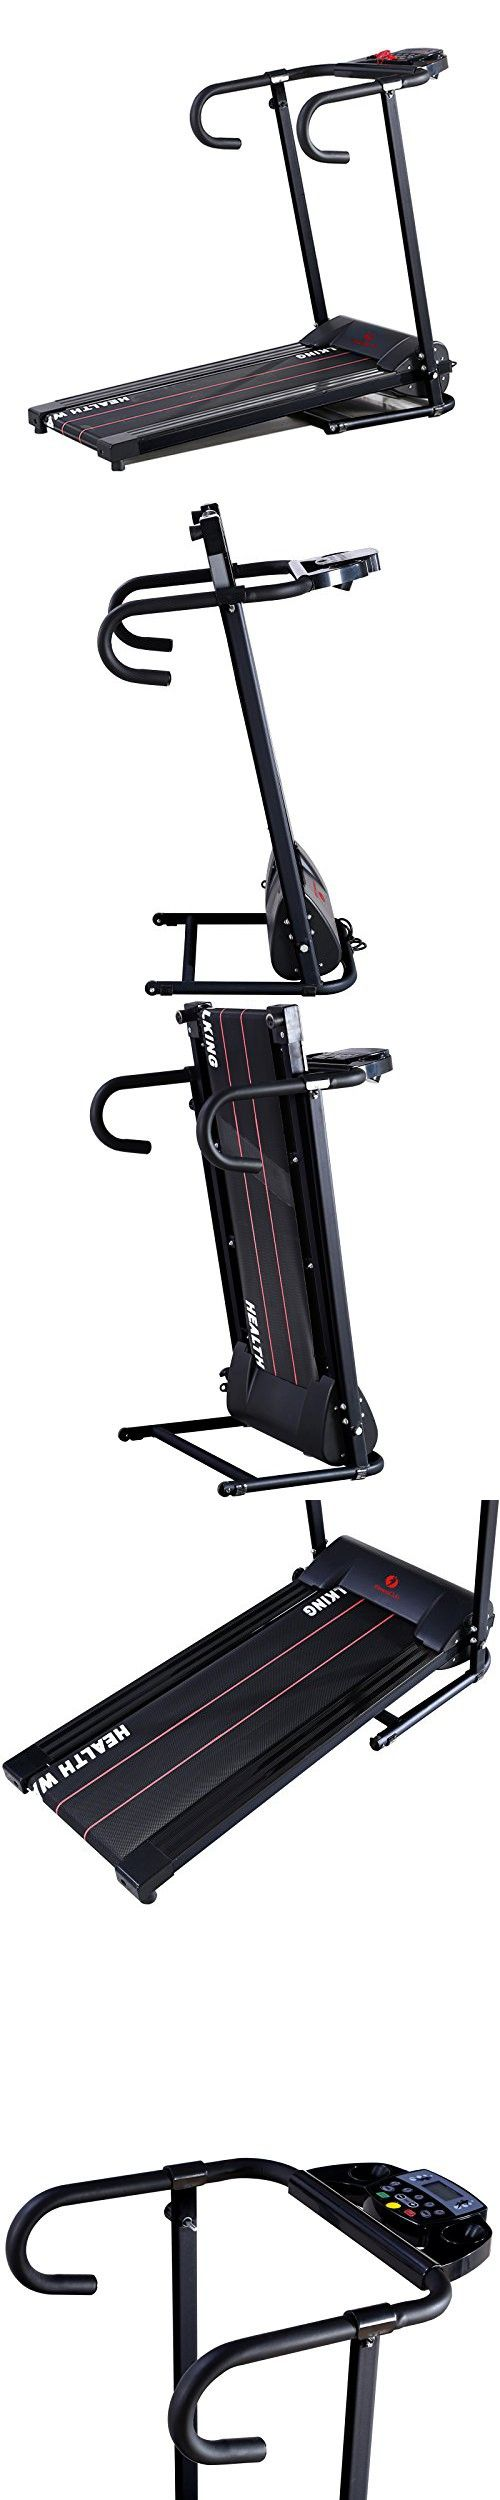 Idealchoiceproduct Electric 500W Portable Folding Treadmill Running Fitness Workout Multi Function Machine